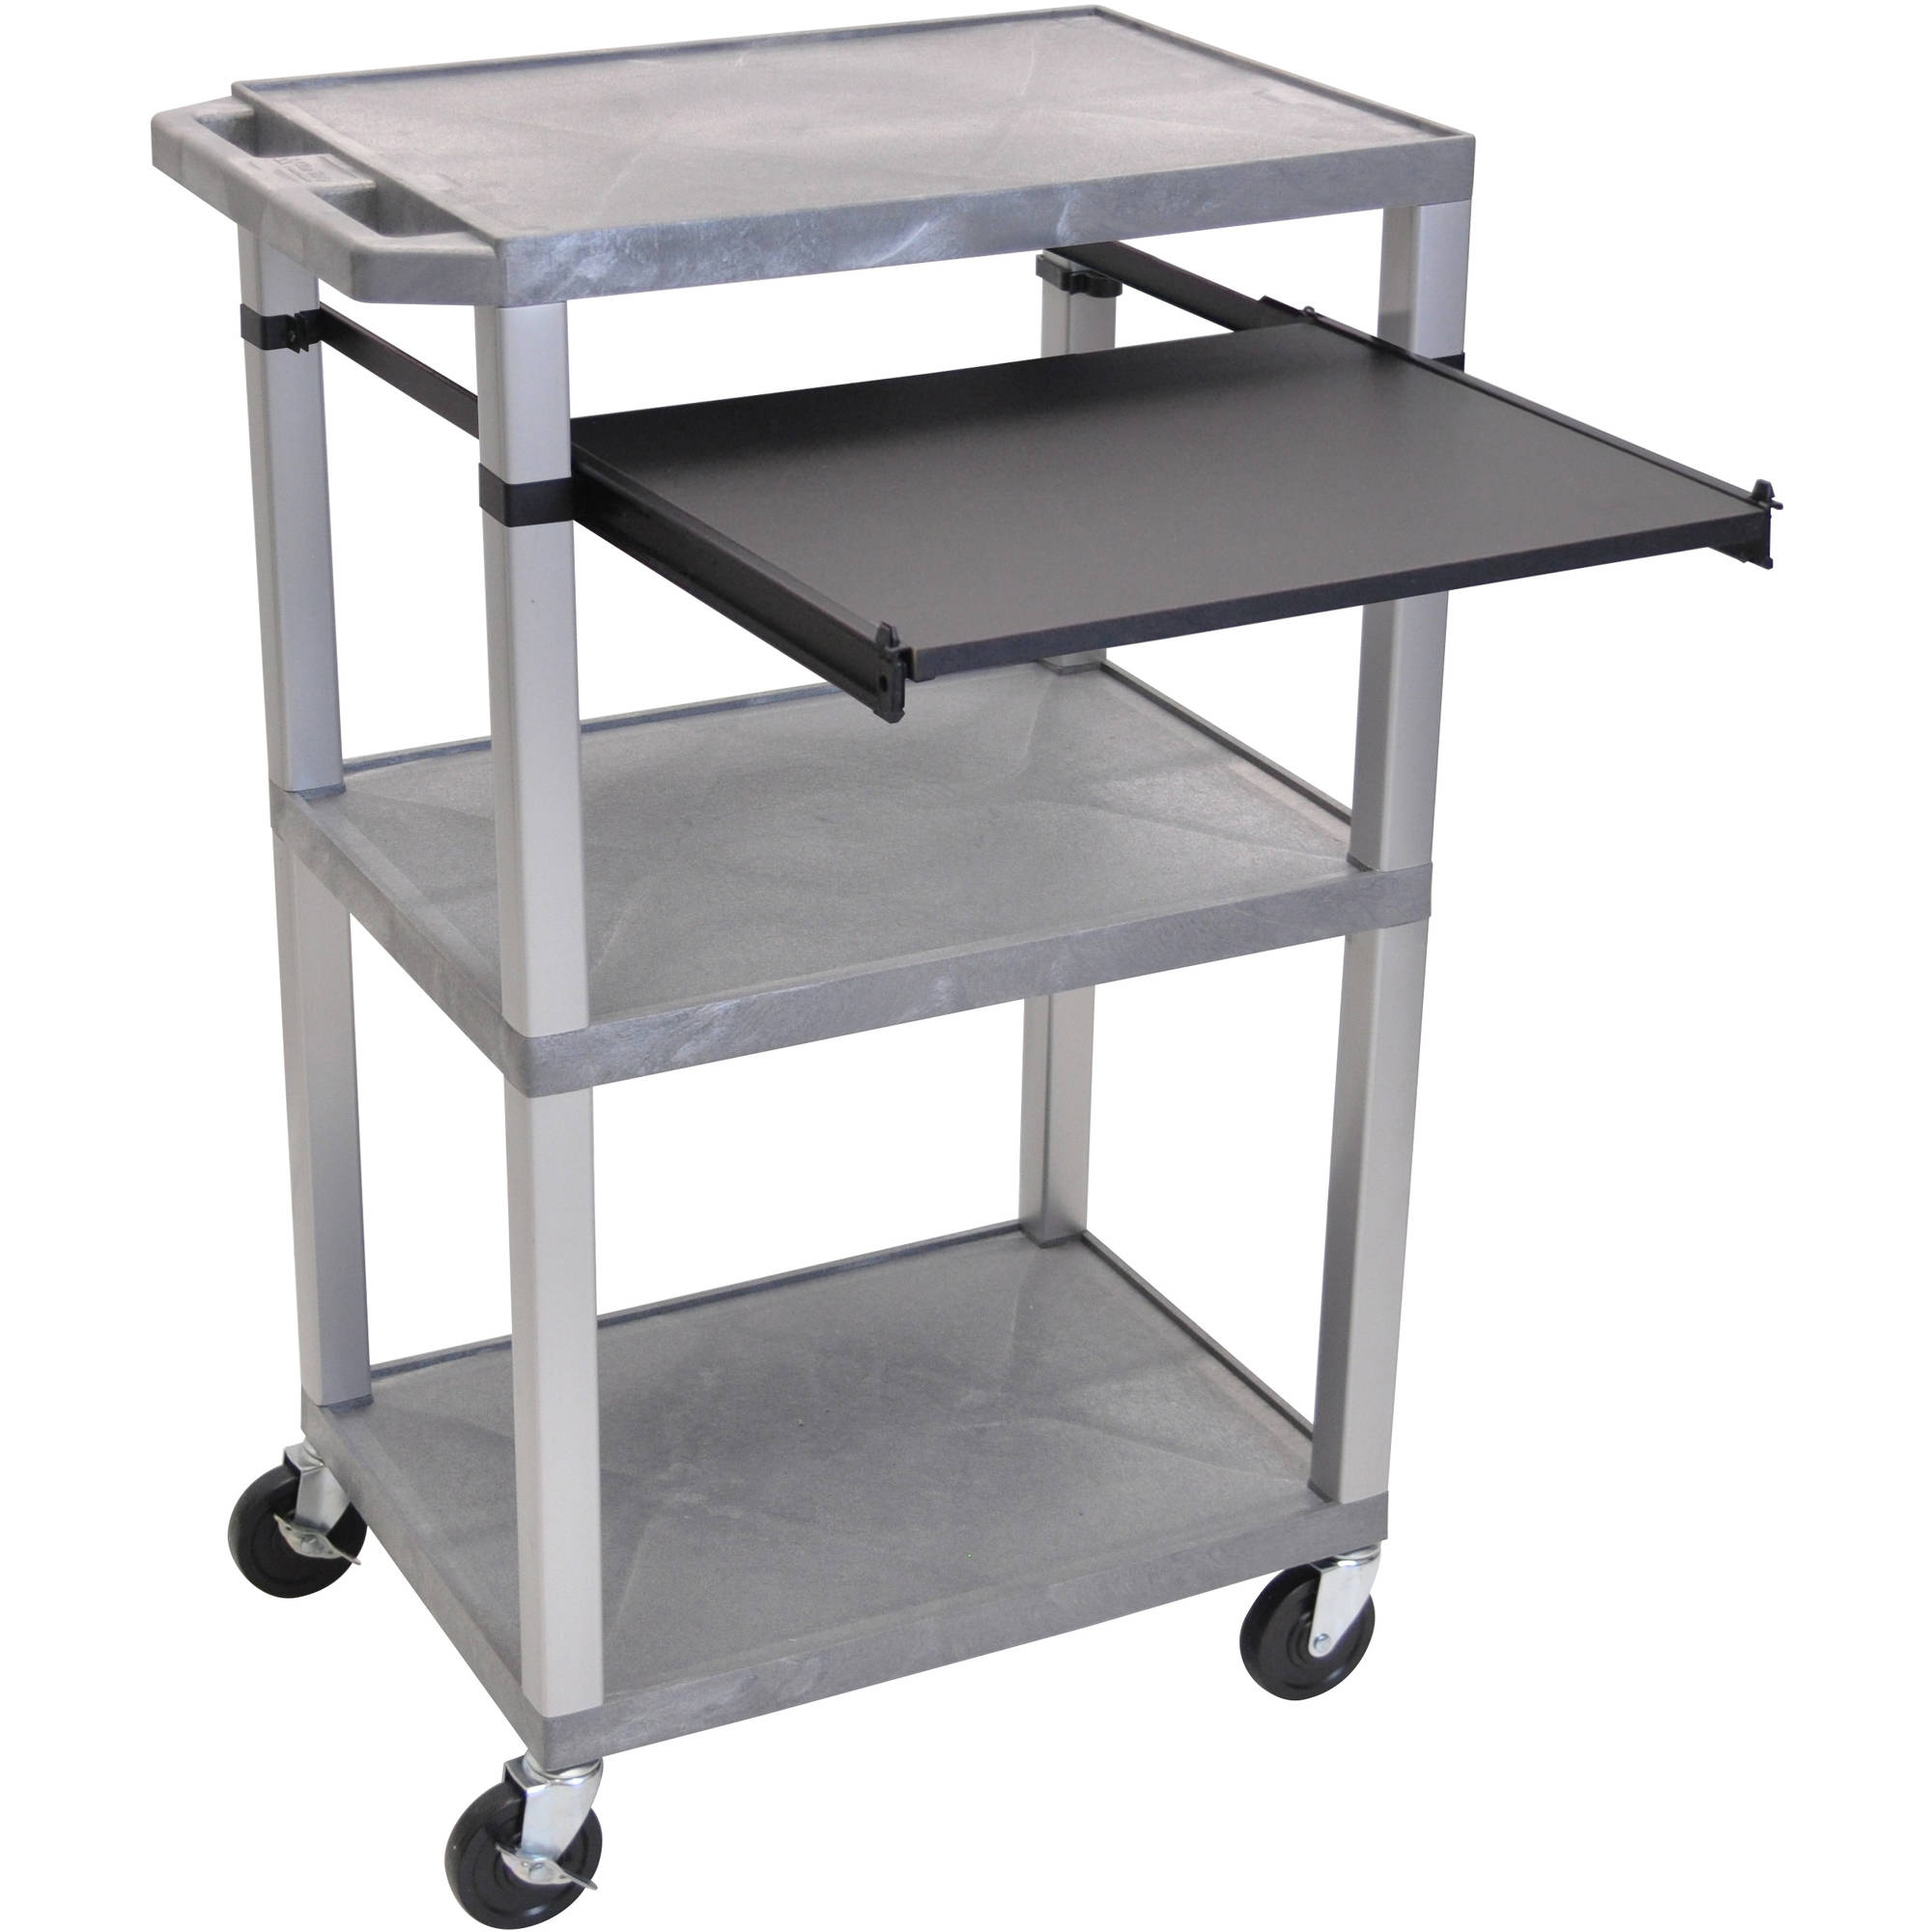 H. Wilson Tuffy 3-Shelf A/V Cart with Electric, Black Front Pullout Shelf, Gray Shelves and Nickel Legs